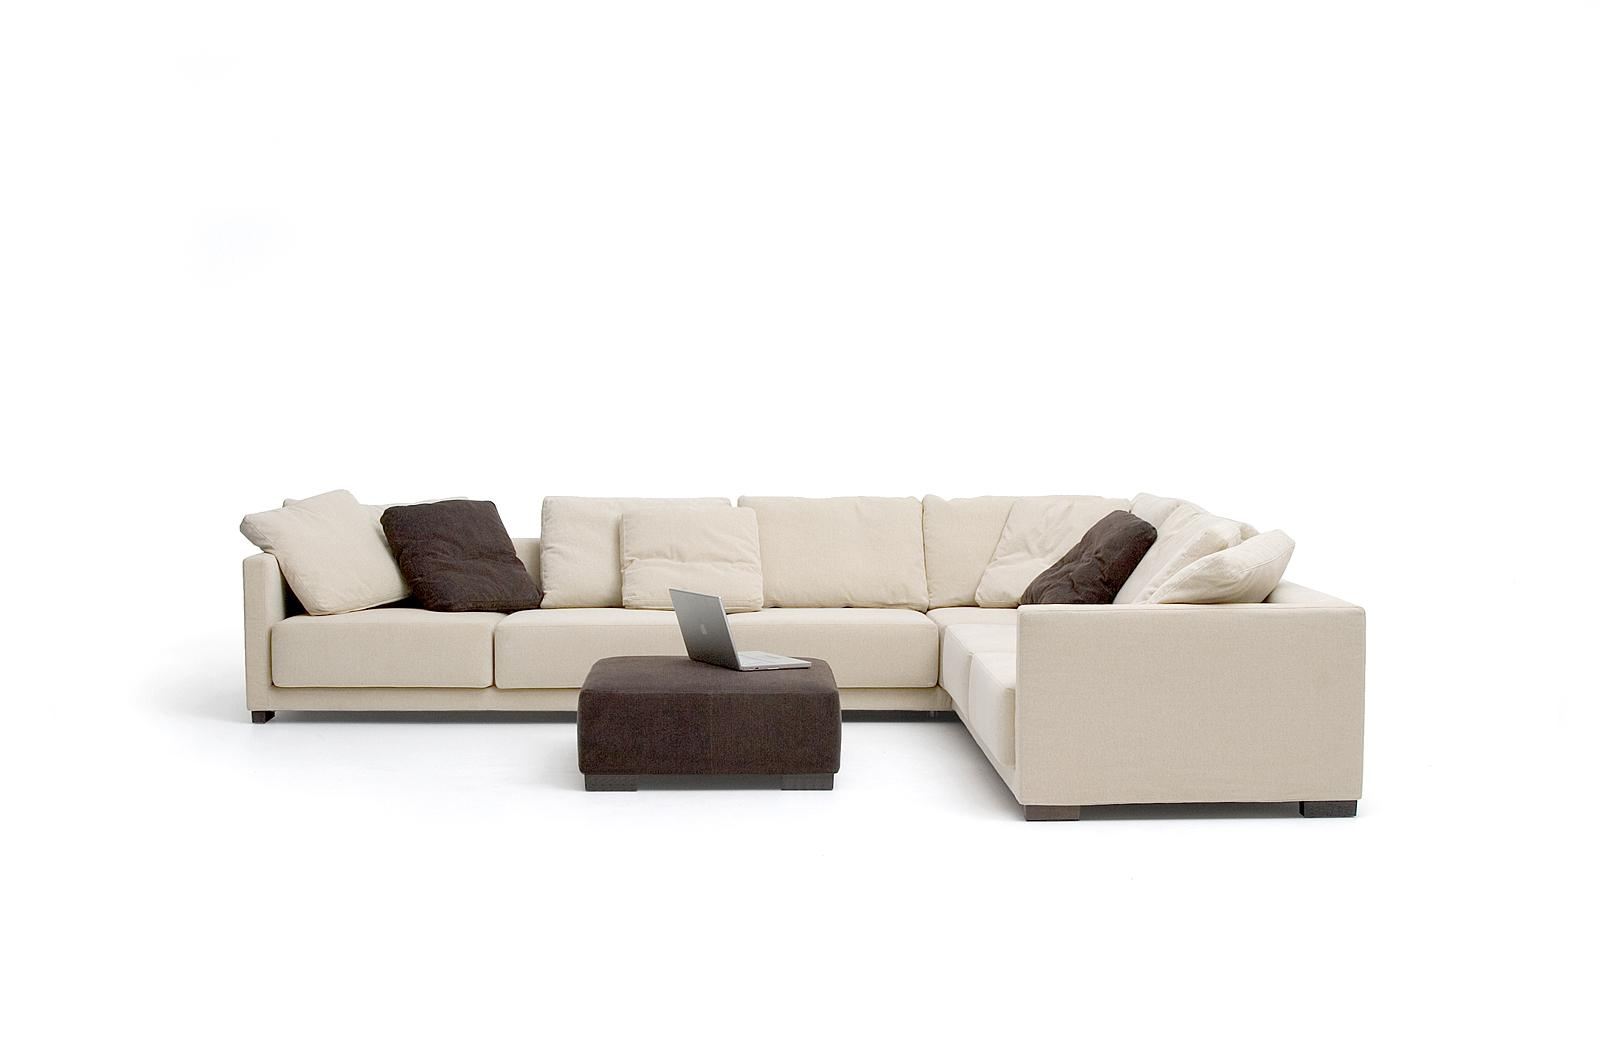 Drop In | Bensen pertaining to Bensen Sofas